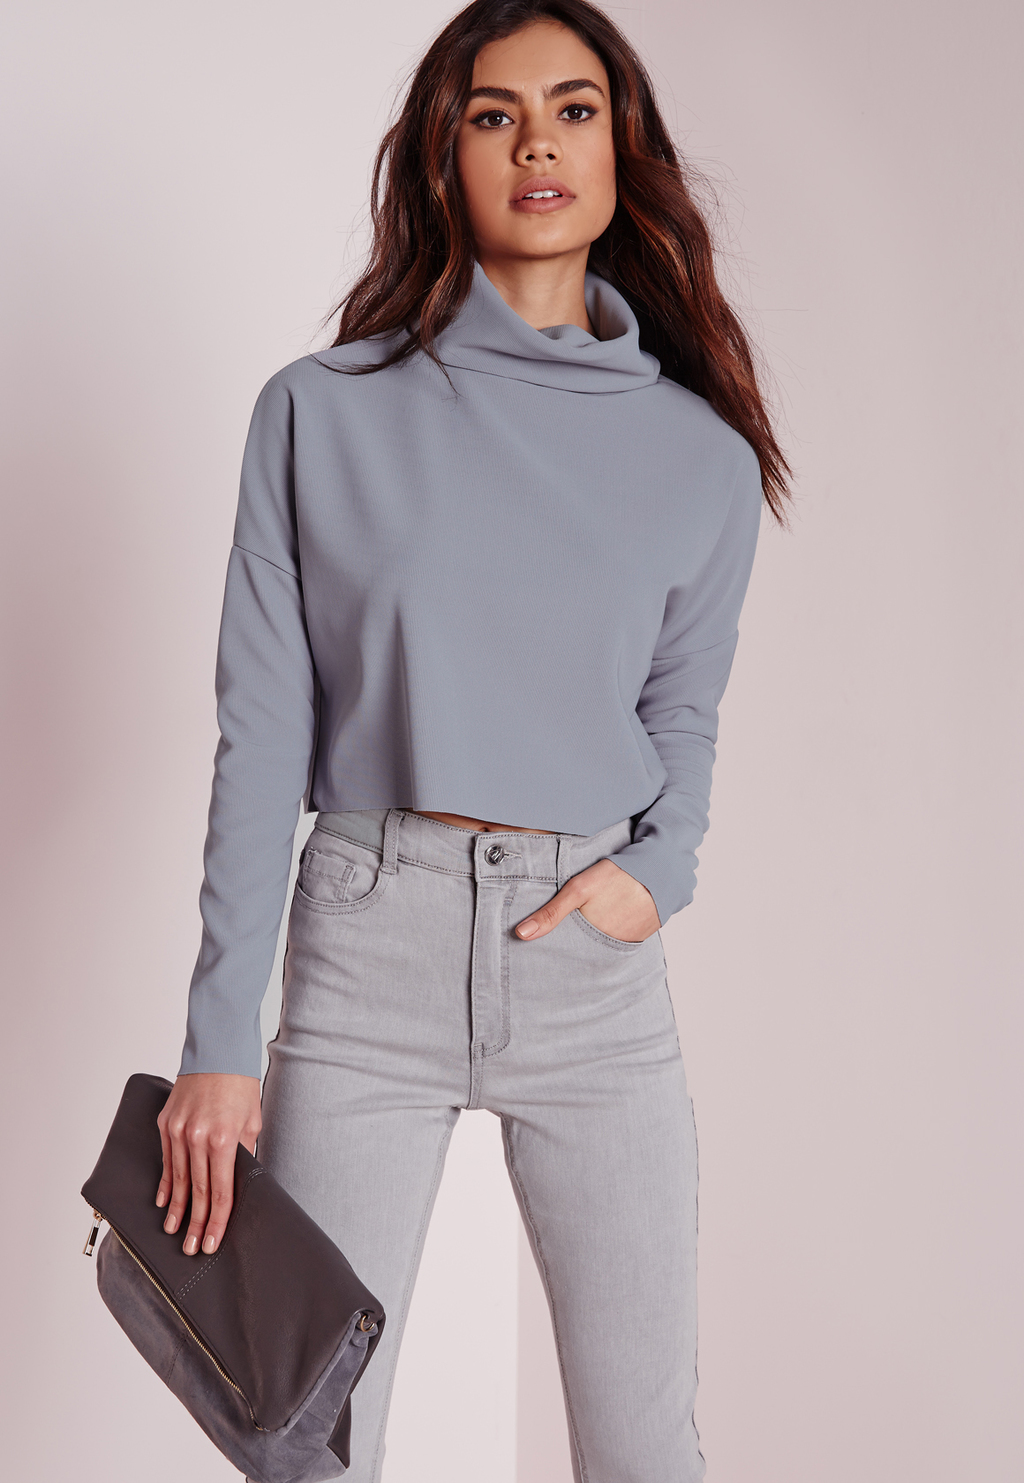 Roll Neck Otterman Rib Long Sleeve Crop Top Grey, Grey - neckline: round neck; pattern: plain; predominant colour: mid grey; occasions: casual, creative work; length: standard; style: top; fibres: polyester/polyamide - stretch; fit: body skimming; sleeve length: long sleeve; sleeve style: standard; pattern type: fabric; texture group: jersey - stretchy/drapey; season: s/s 2016; wardrobe: basic